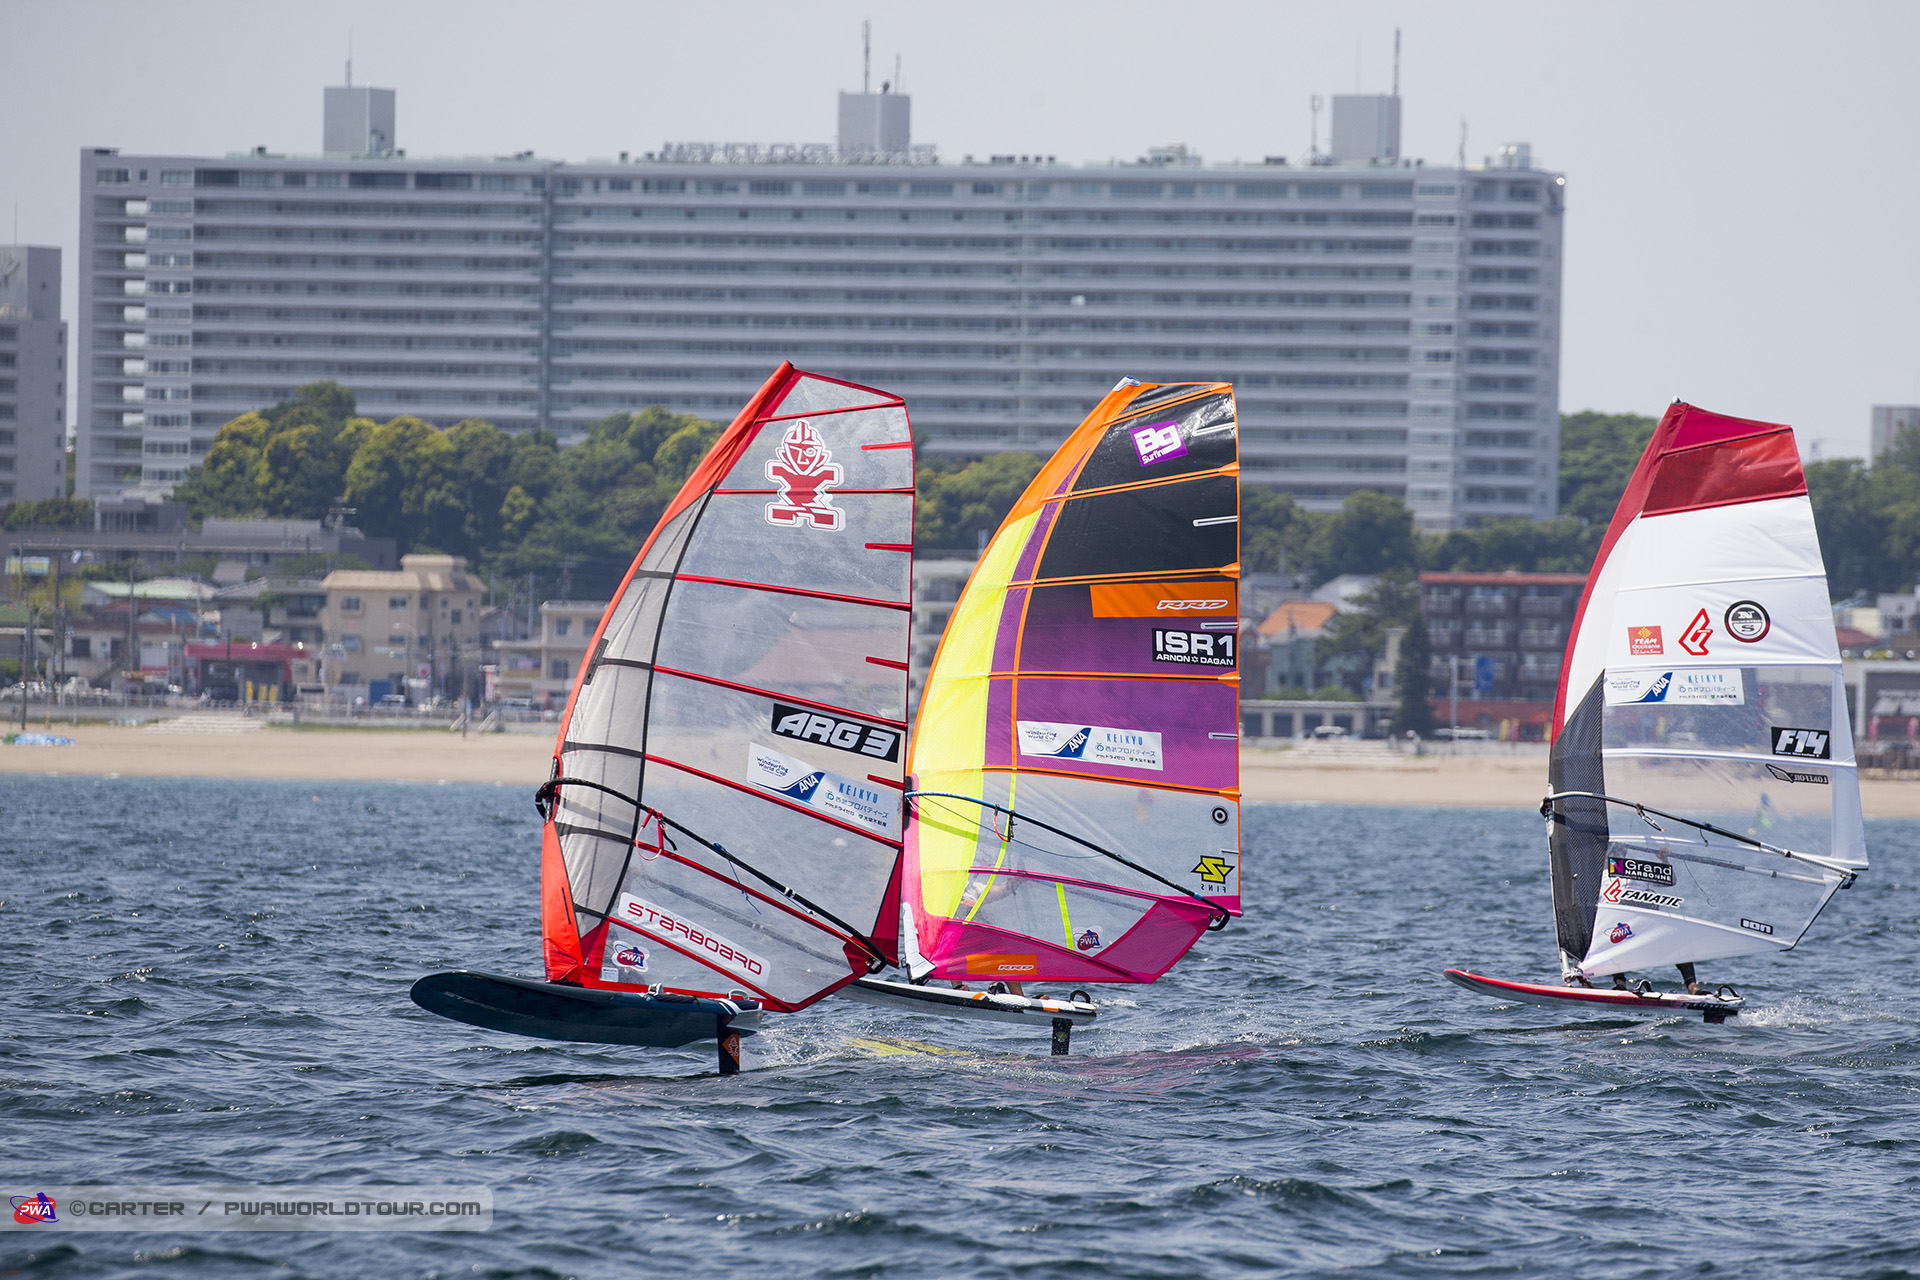 Gonzalo Costa_hoevel made his home work over the last winter (Photo: Carter/PWAworldtour)